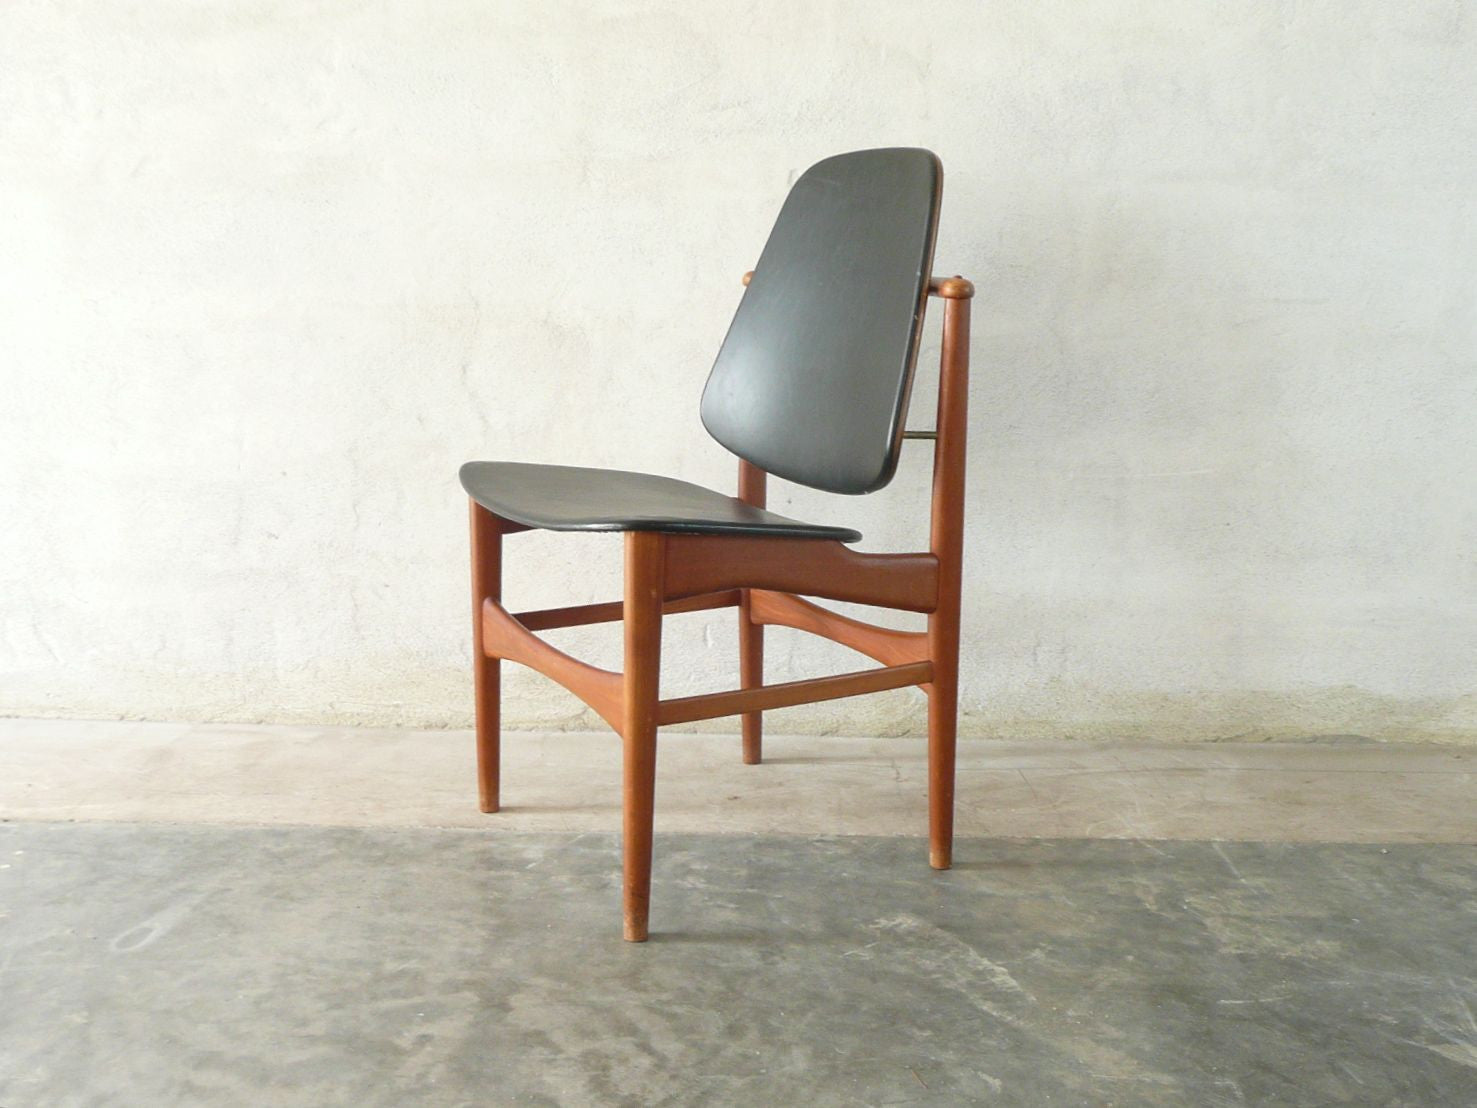 Pair of dining chairs by Arne Vodder